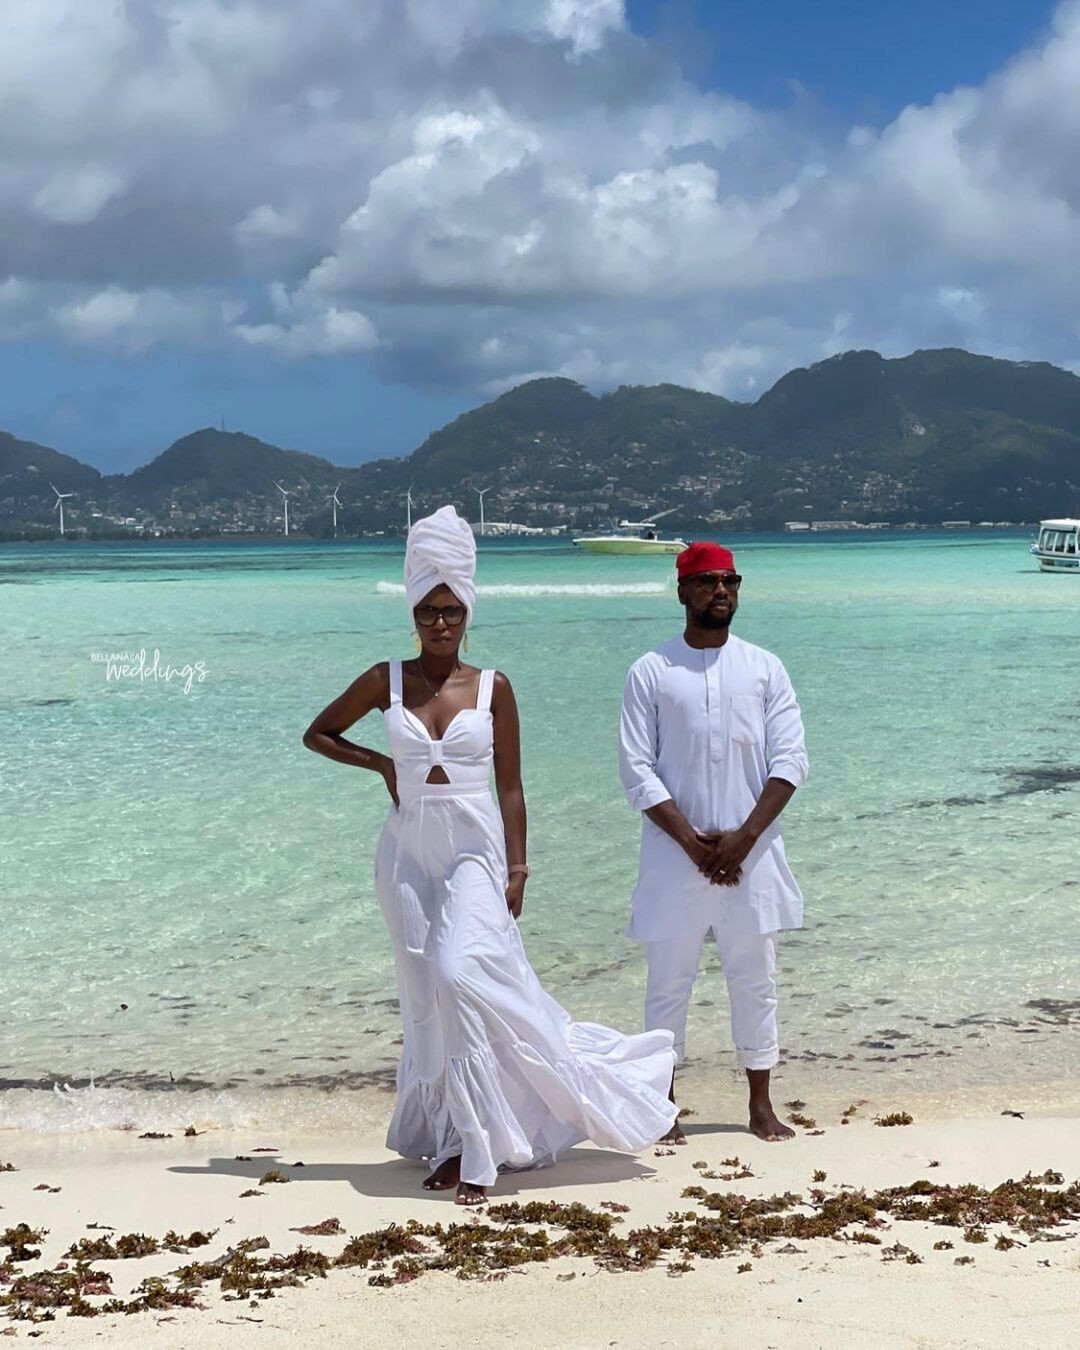 6140906bb49da - Media personality, Debola Williams and wife spend their honeymoon in Seychelles